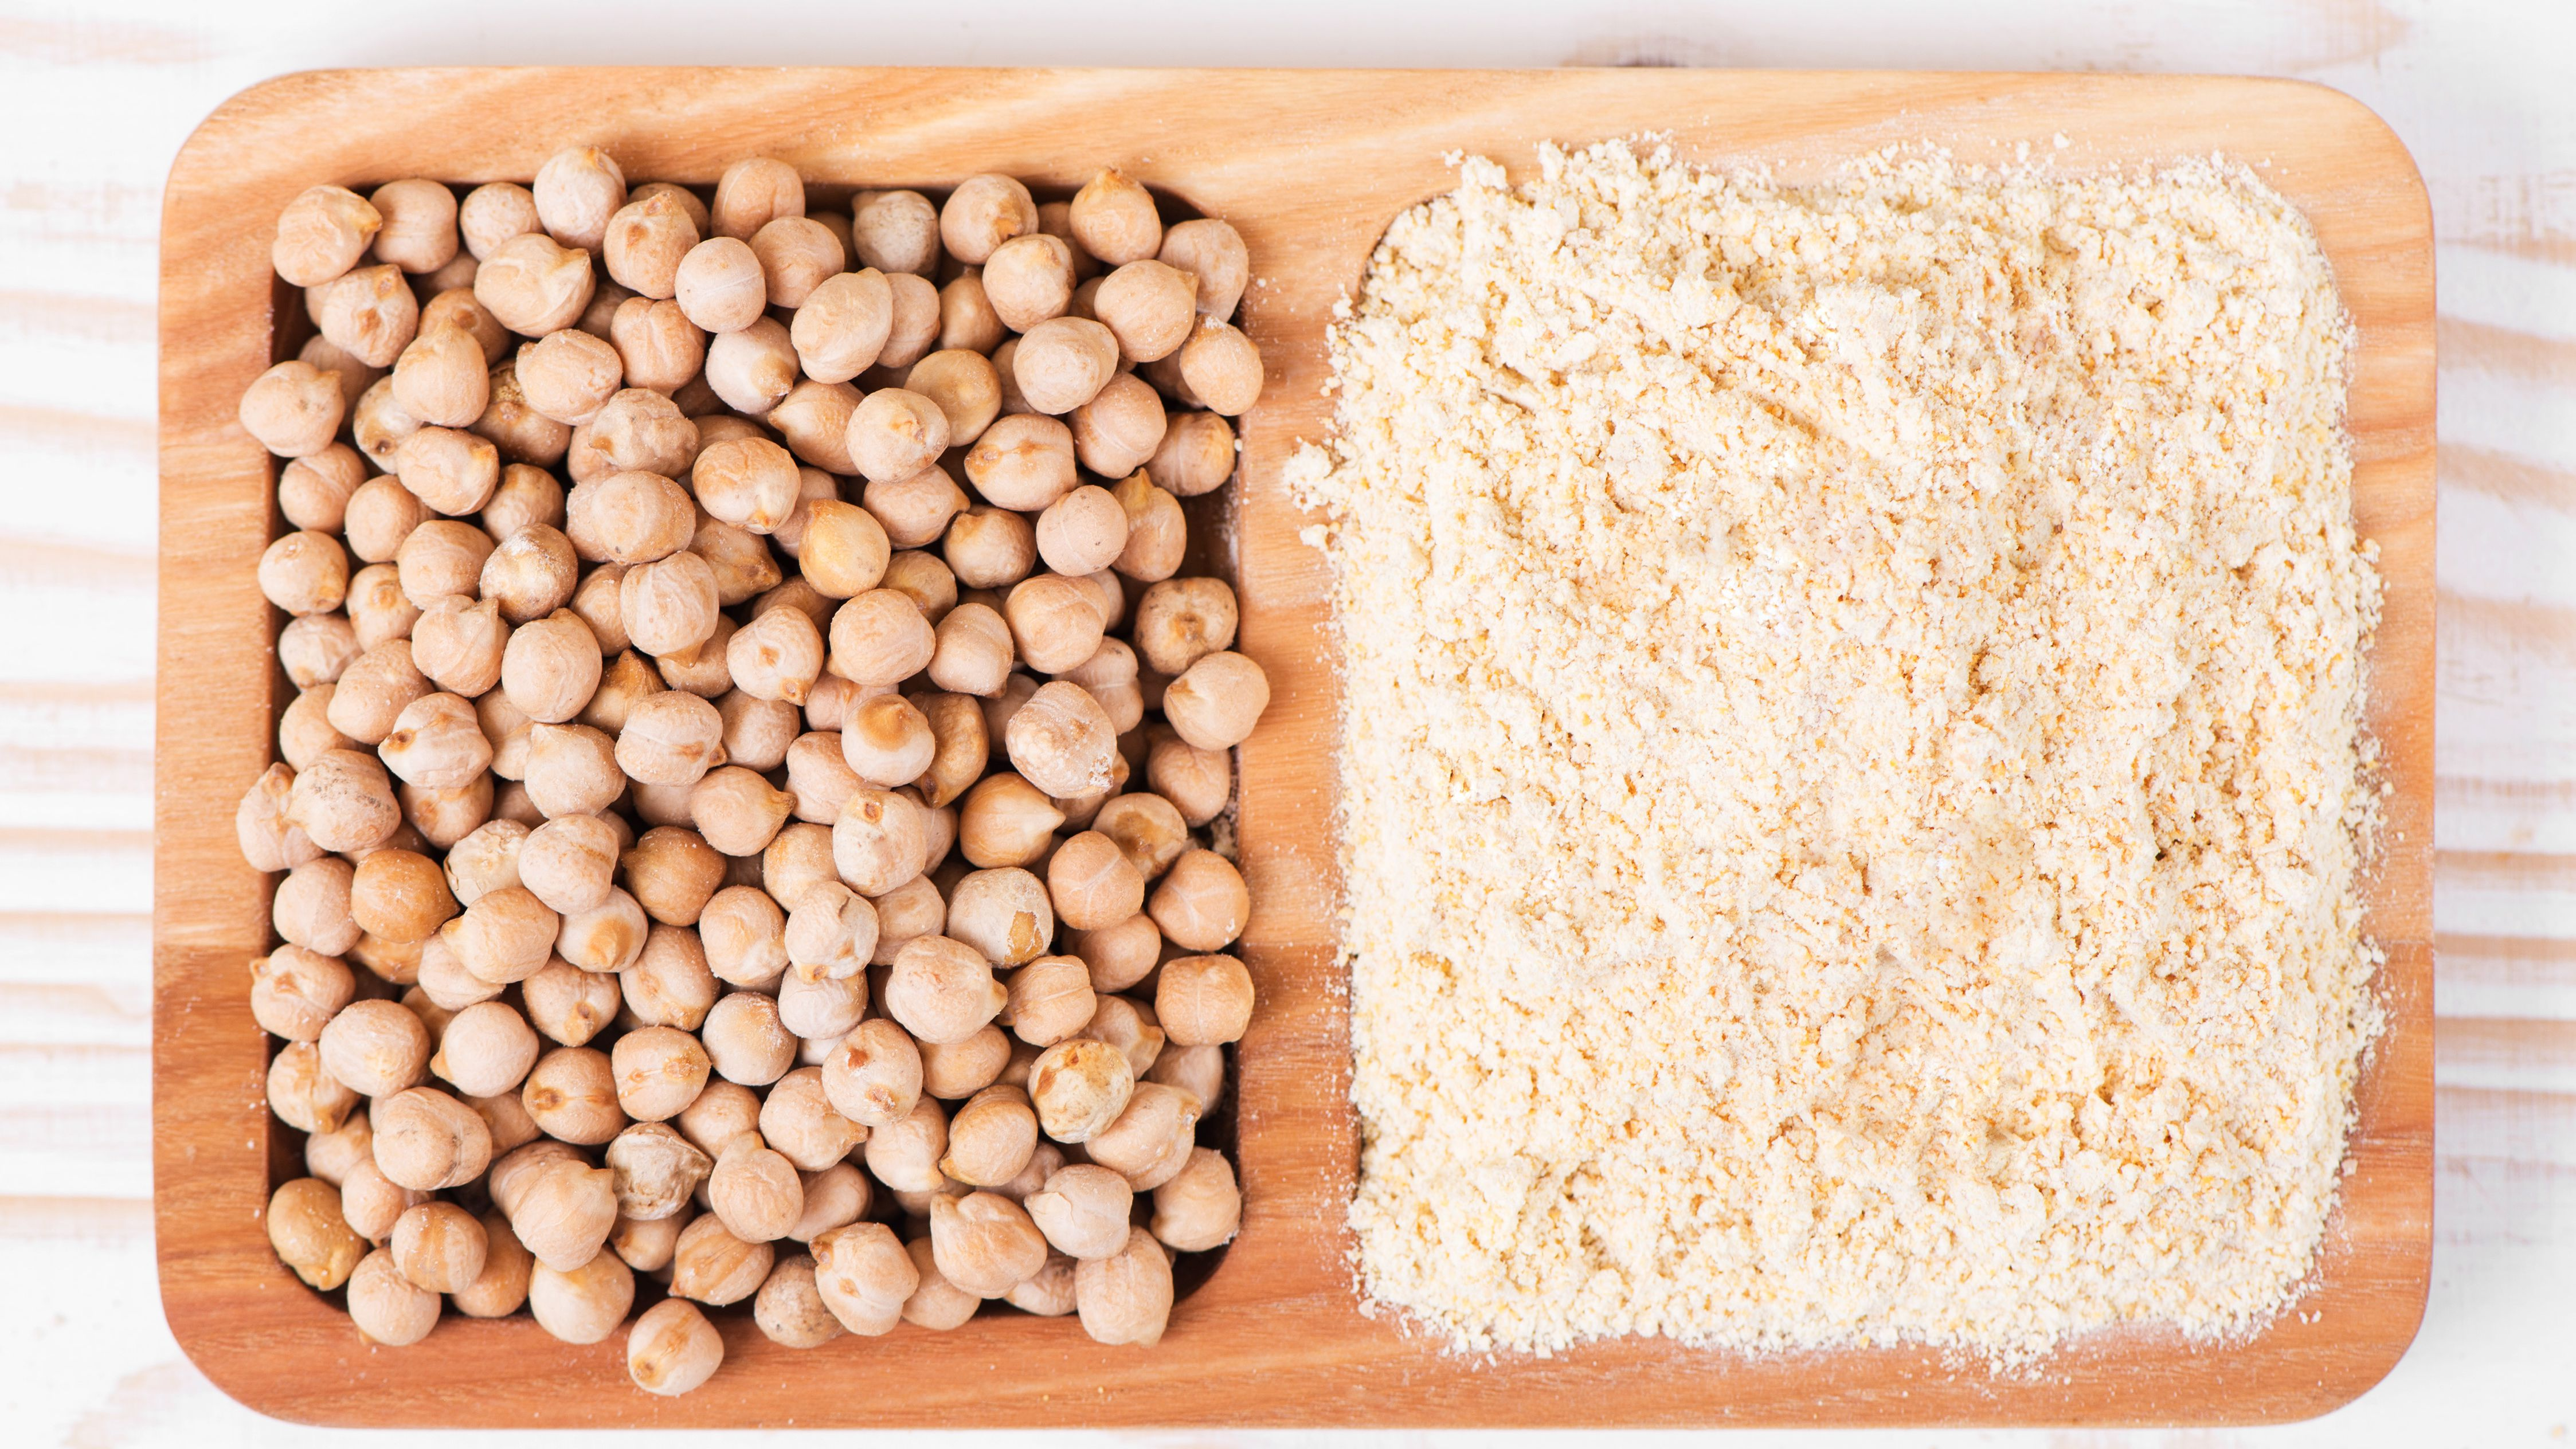 How to Make Chickpea Flour